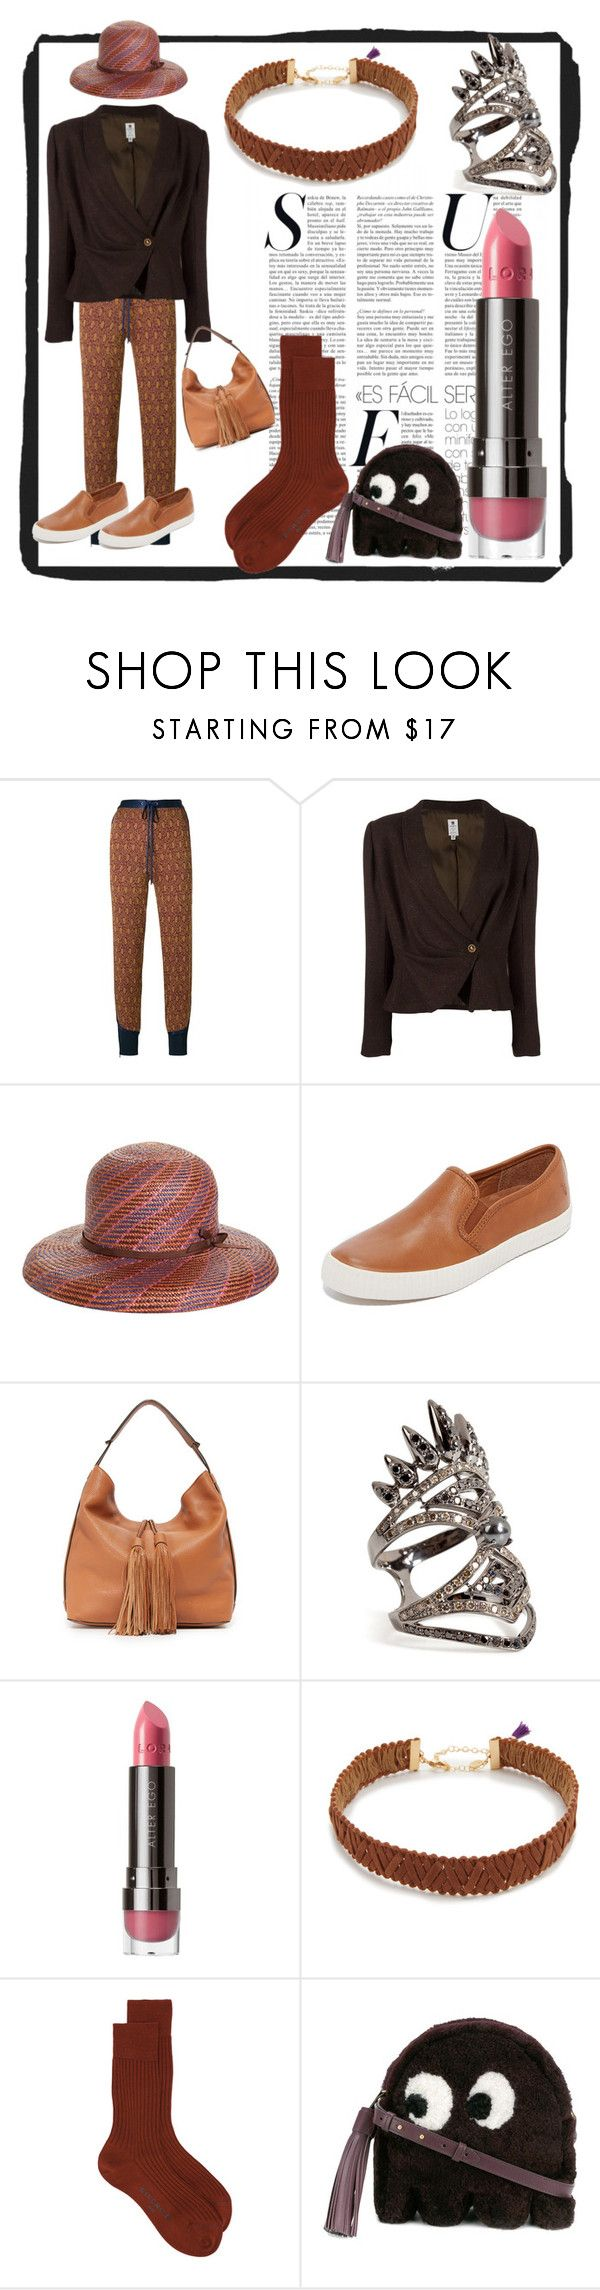 """""""set for alert"""" by denisee-denisee ❤ liked on Polyvore featuring 3.1 Phillip Lim, Emanuel Ungaro, Brooks Brothers, Frye, Rebecca Minkoff, Nikos Koulis, LORAC, Shashi, Givenchy and Anya Hindmarch"""